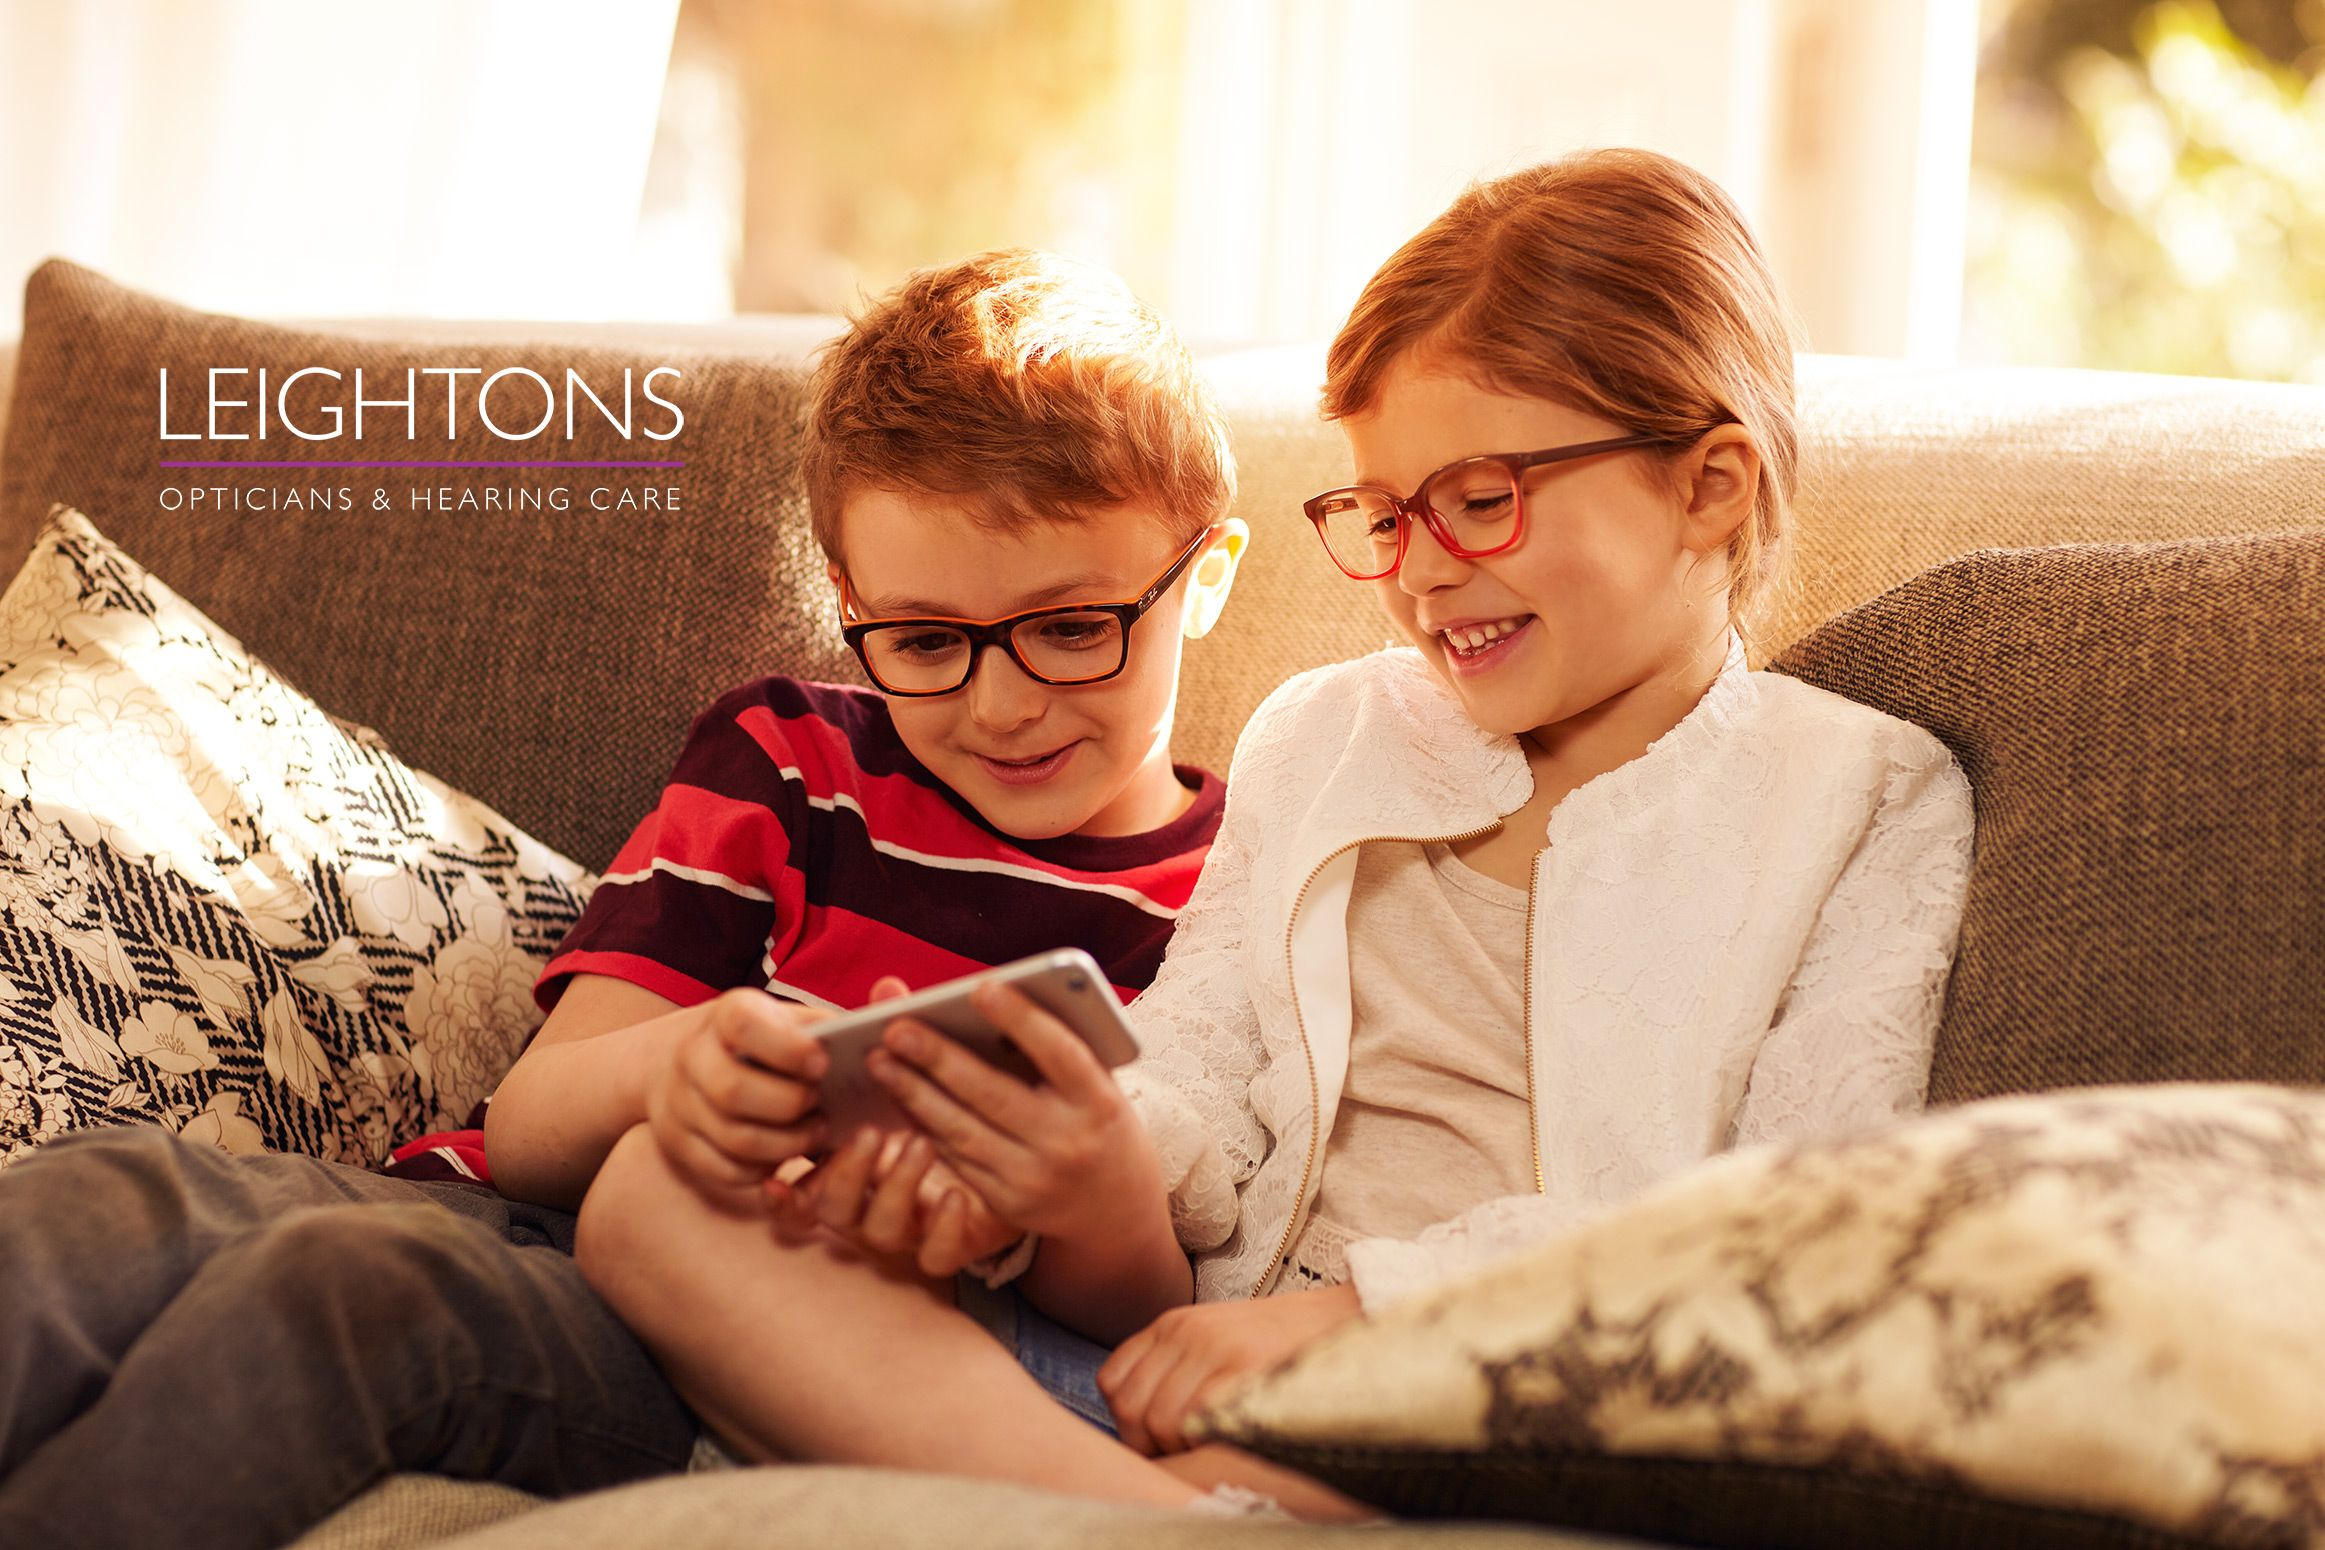 advertising-photographer-london-lifestyle-family-opticians-ruth-rose-8-compressor.jpg